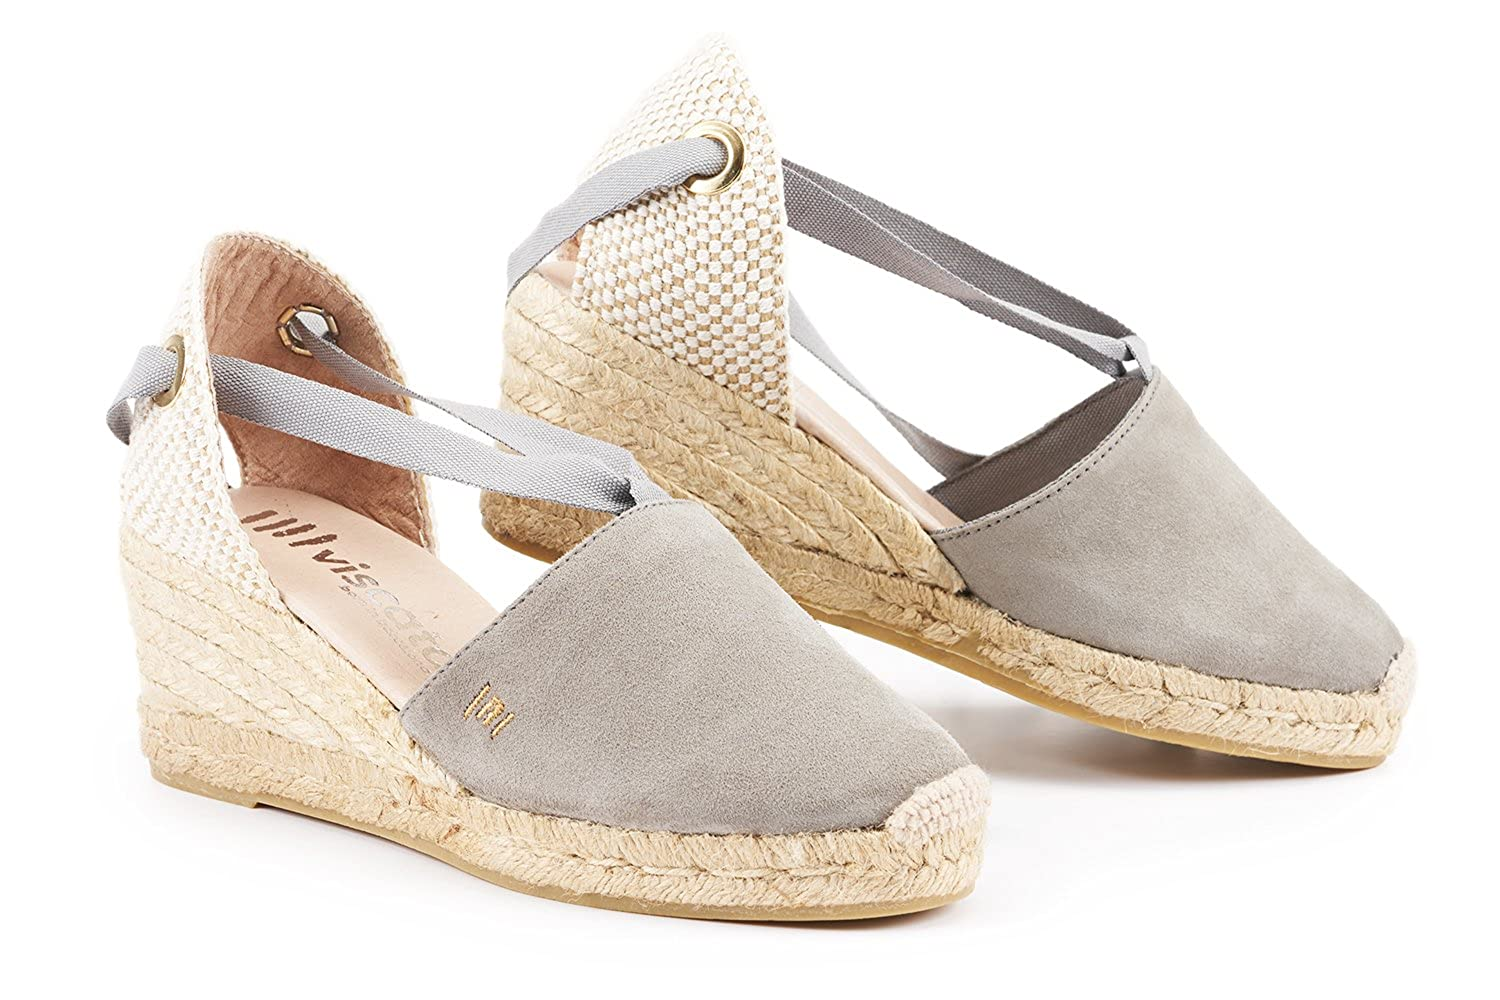 Viscata Fosca Suede 25 Wedge Soft Ankle Tie Closed Inside Heels Karen Khaky 37 Toe Classic Espadrilles Heel Made In Spain Shoes